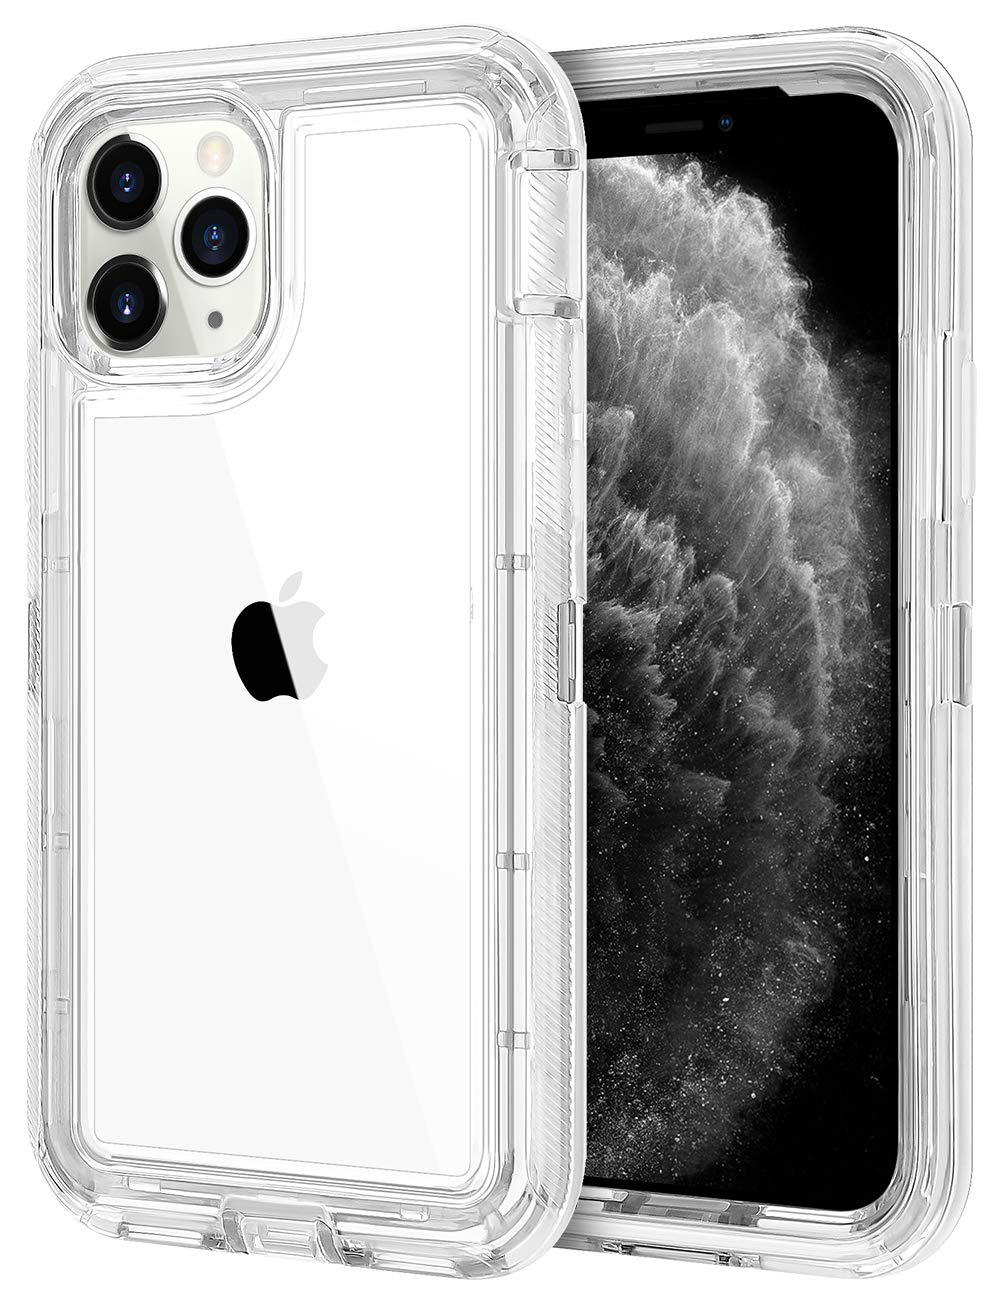 JAKPAK Case for iPhone 11 Pro Max Case Clear Transparent Heavy Duty Protection for Shockproof Anti Scratch Cover Dual Layer Hard PC Bumper TPU Back Case for iPhone 11 Pro Max 6.5 inches Transparent